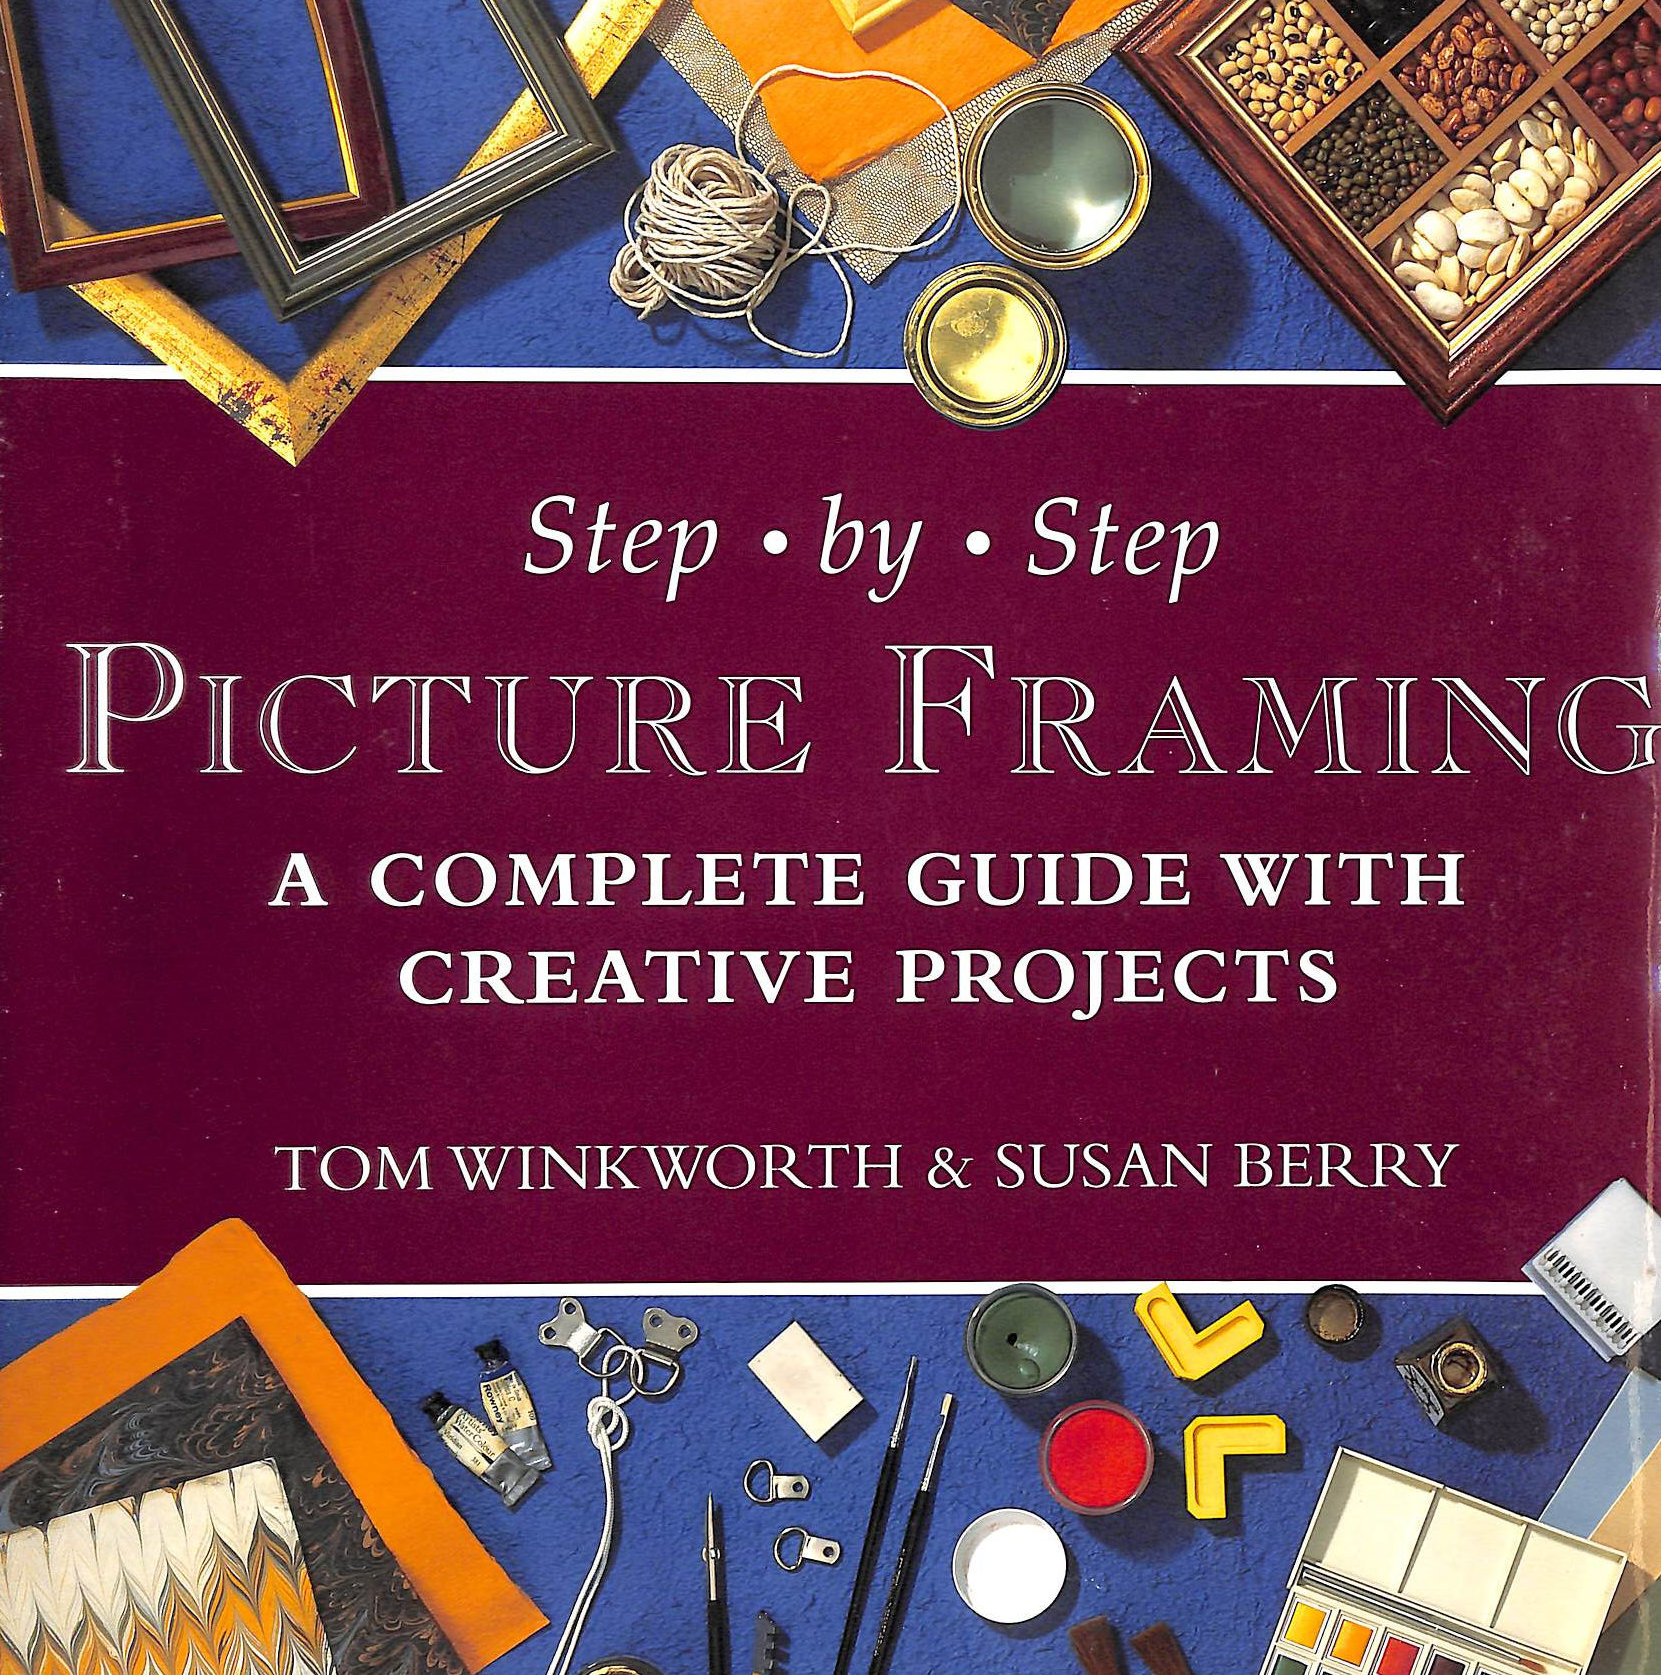 Image for Step-by-step Picture Framing: A Complete Guide with Creative Projects